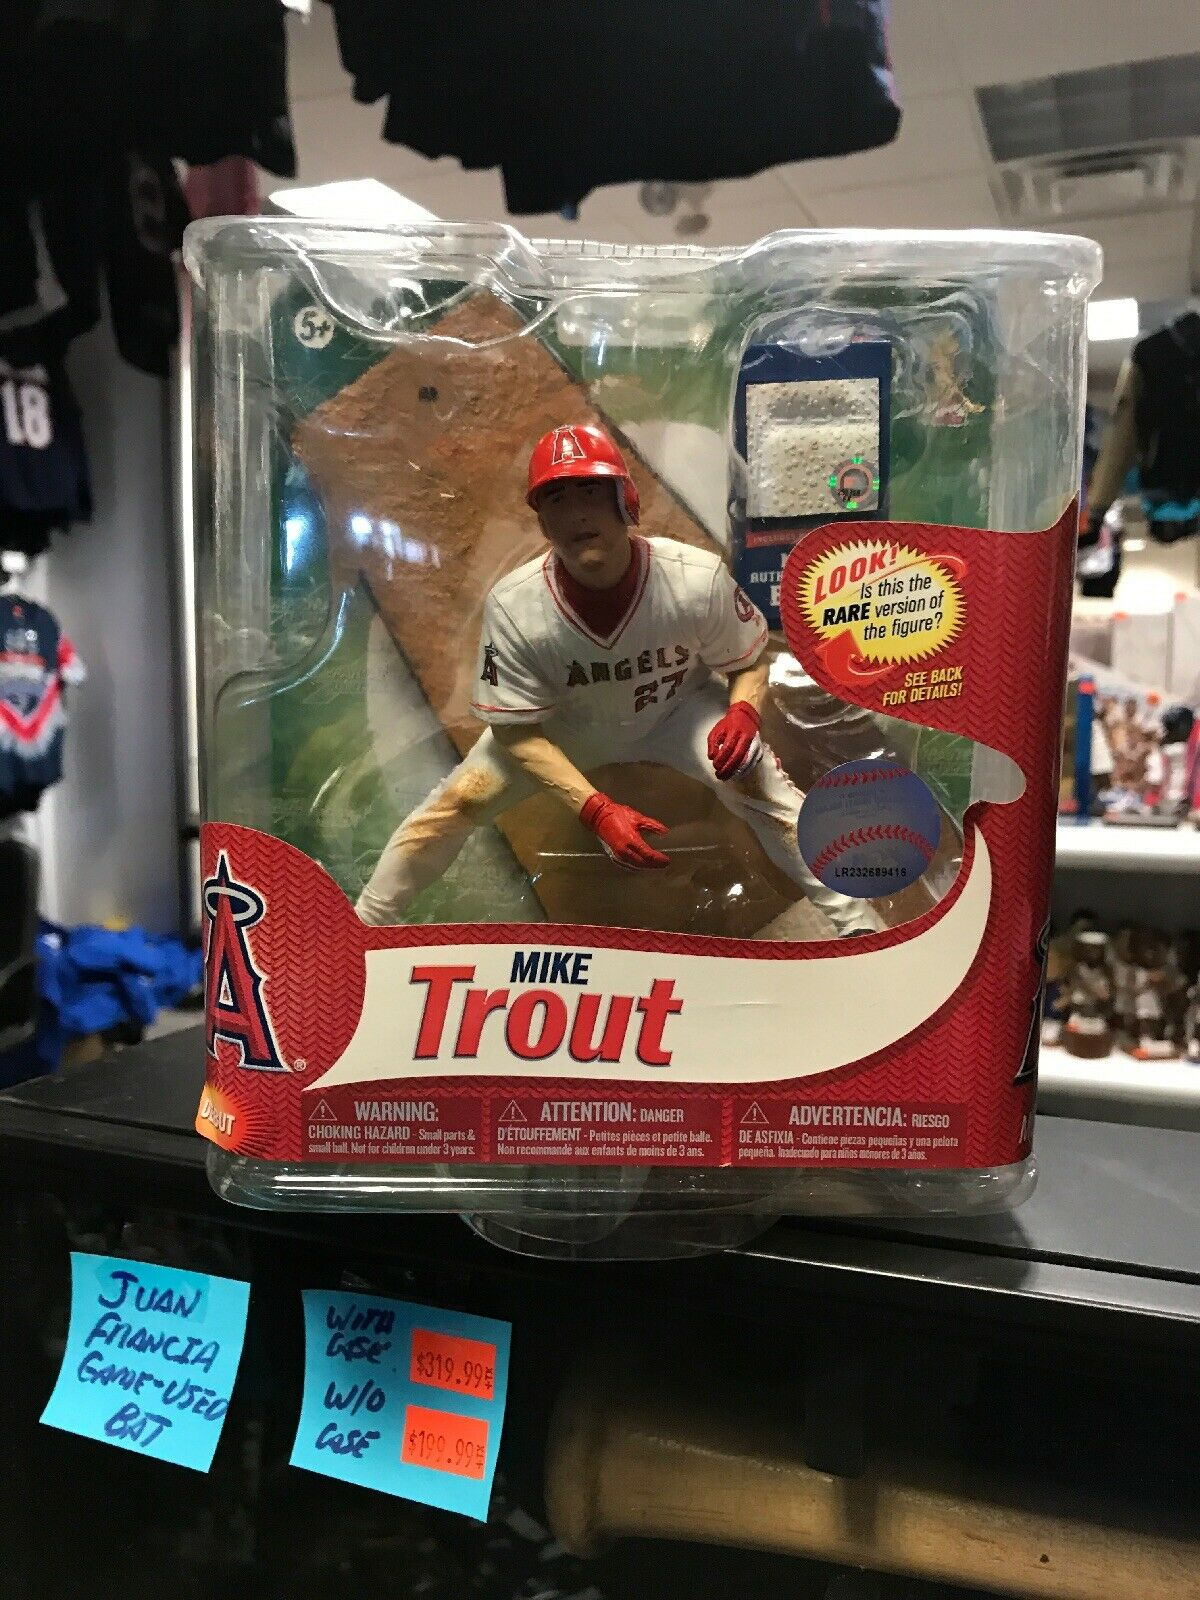 RARE McFarlane Mike Trout Angels Variant Variant Variant Rookie Figure  200 Authentic Base NM 2ea879